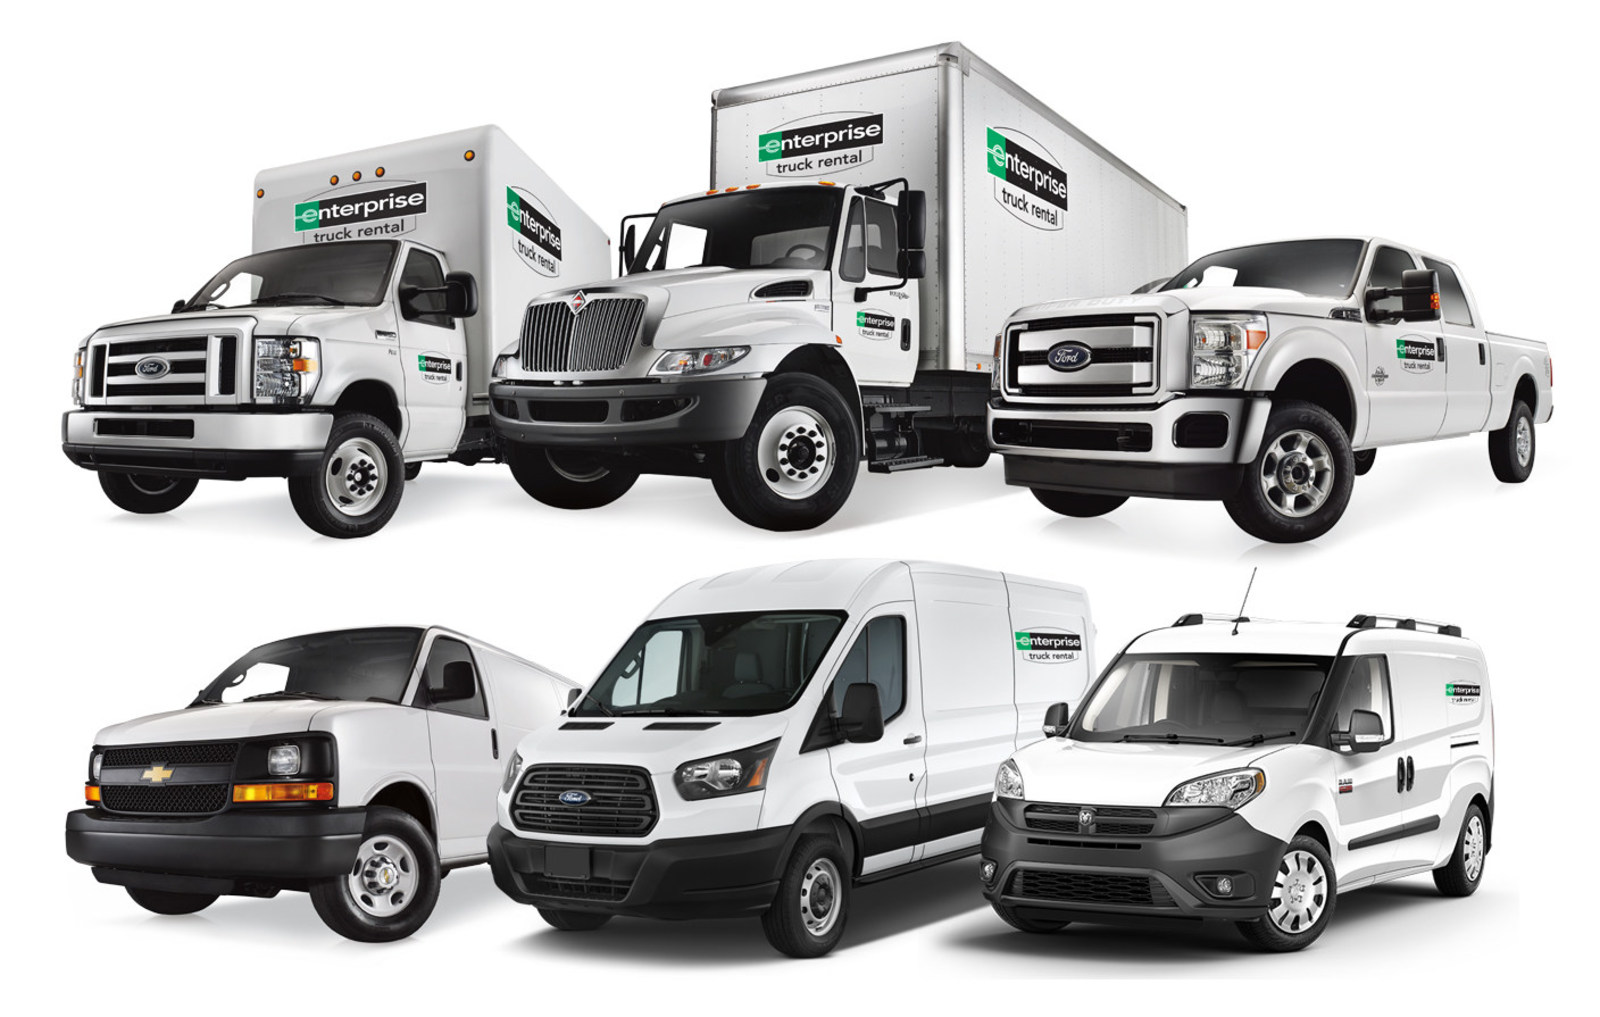 Enterprise-Truck-Rental Trucks